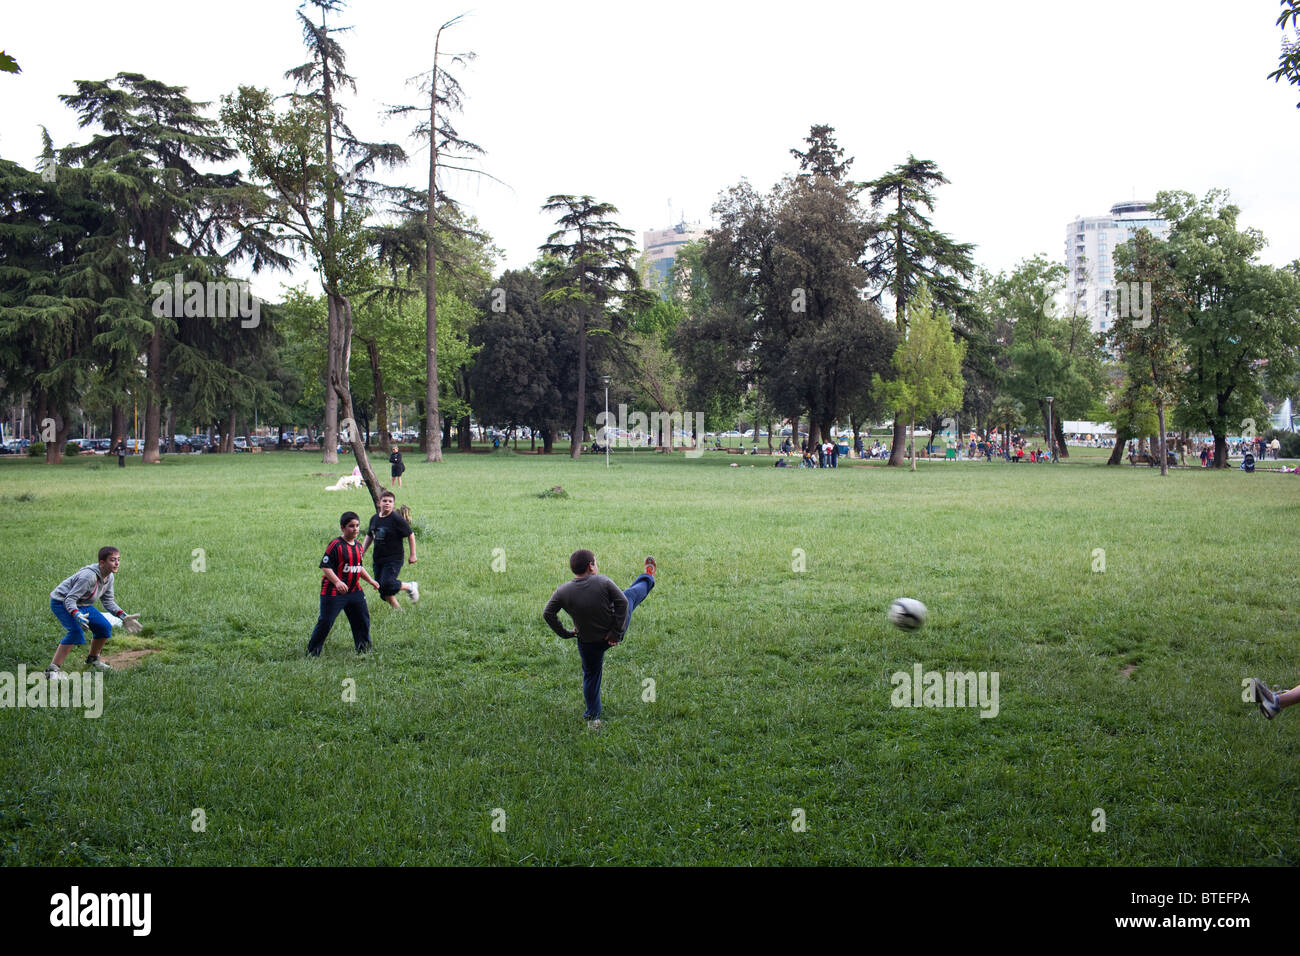 A group of boys play football in a park in Tirana, the capital of Albania. - Stock Image